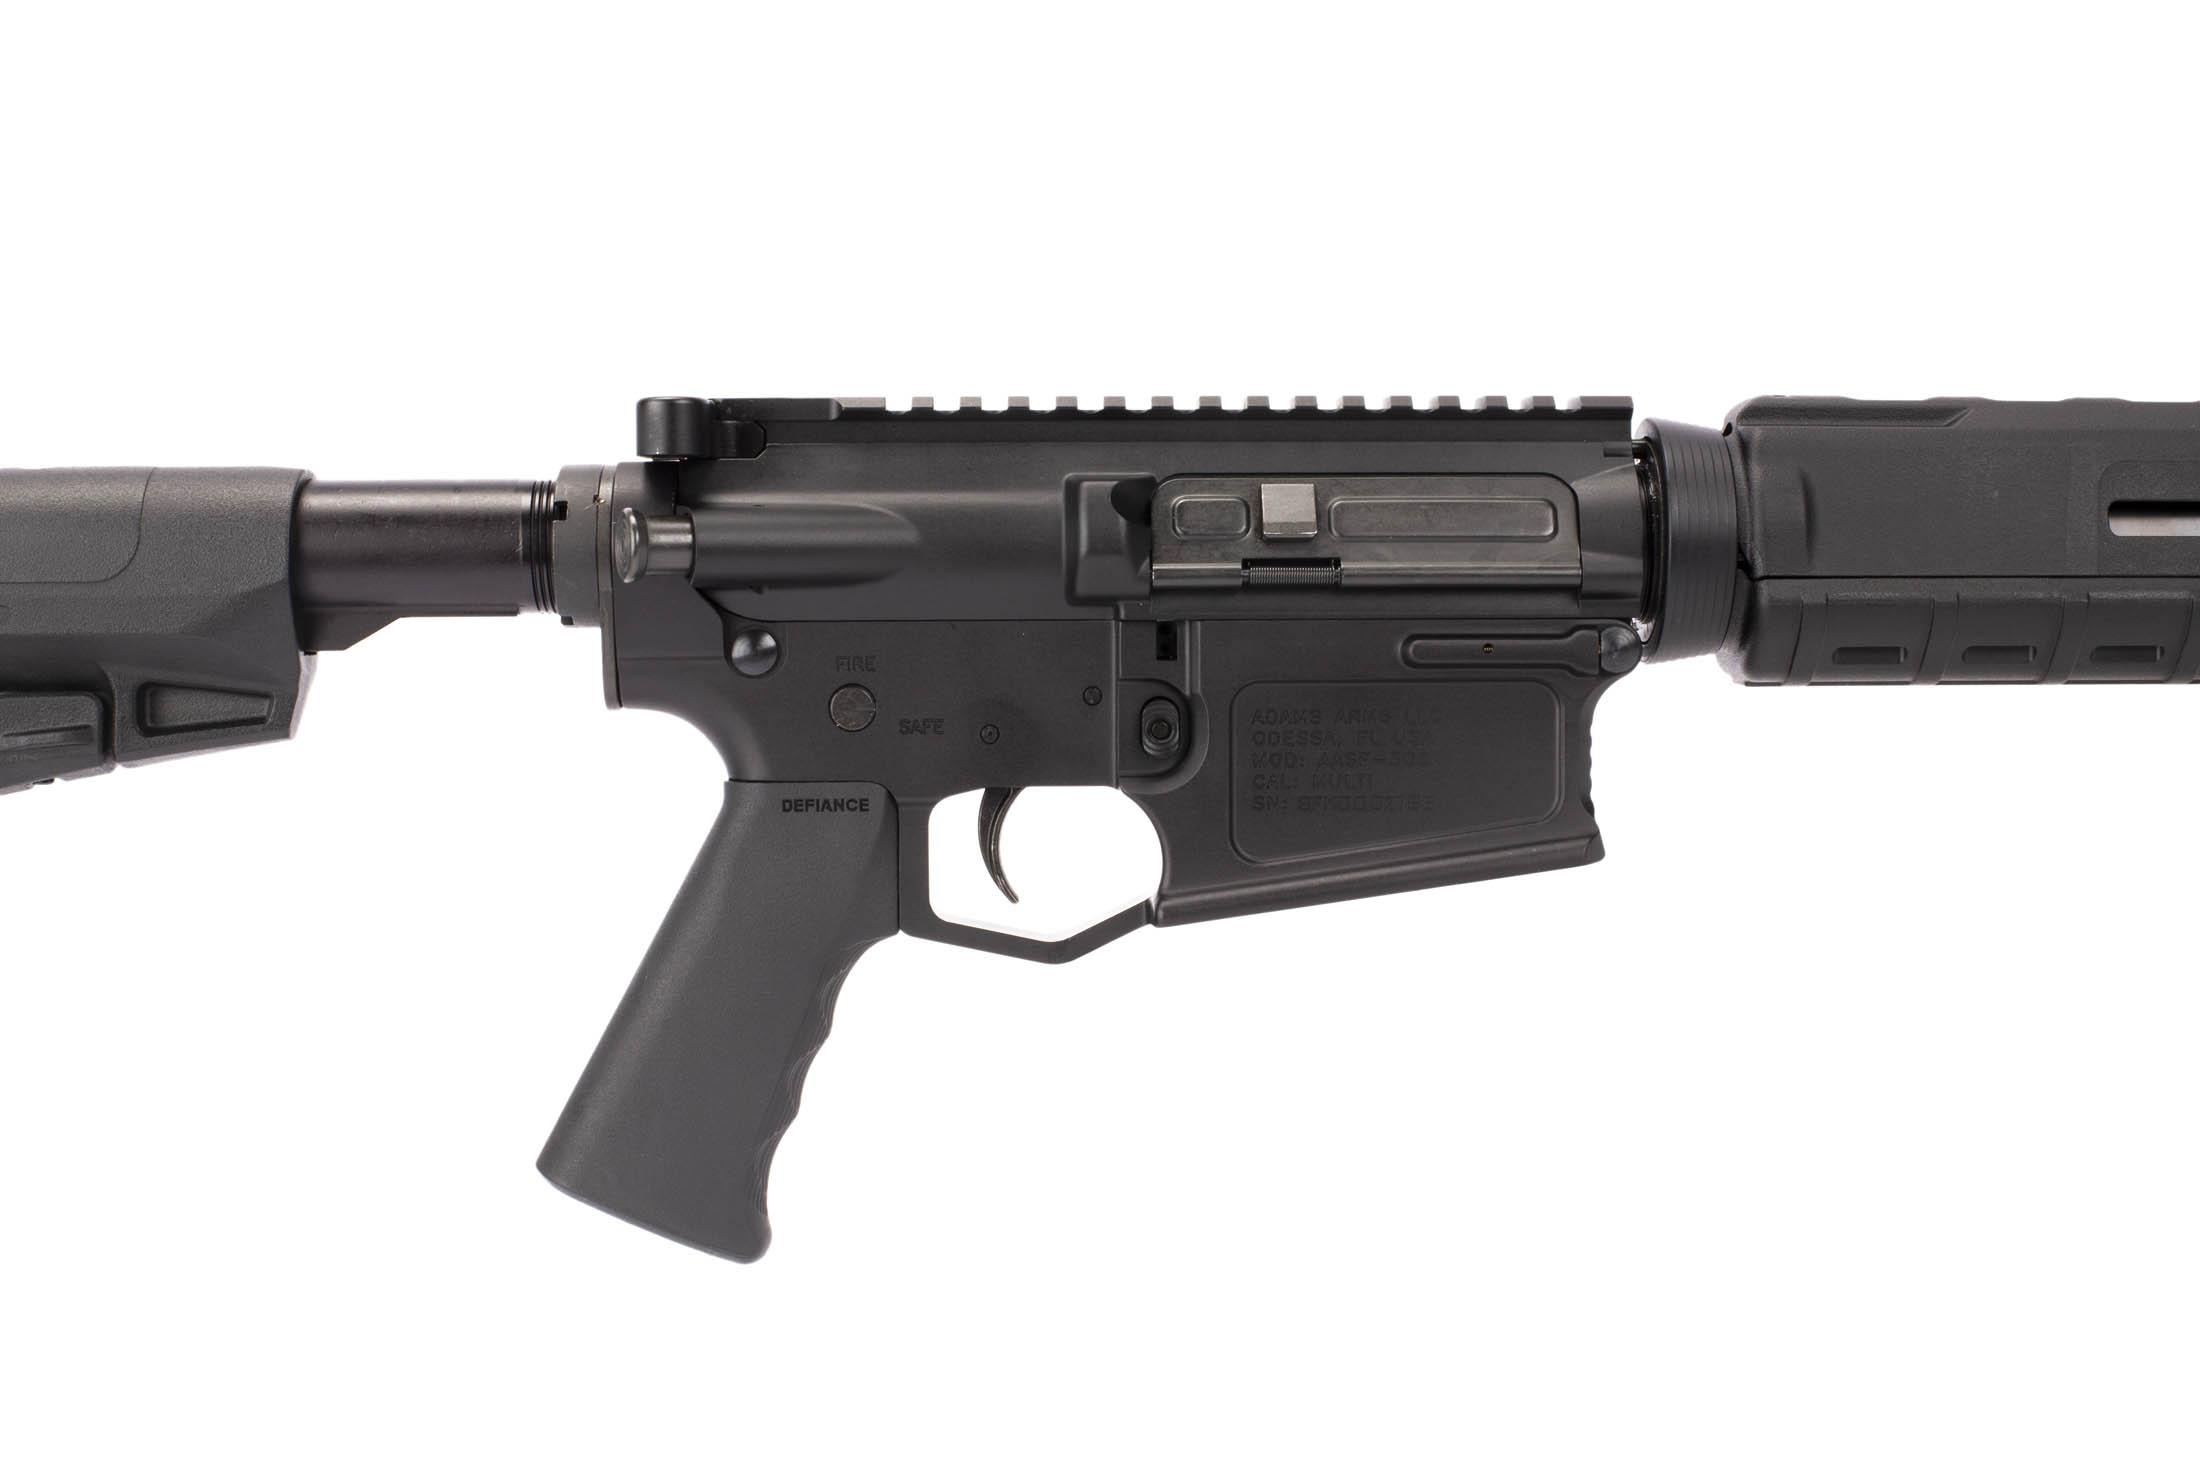 Adams Arms 16in .308 Win carbine length short stroke AR-10 rifle has ships with Defiance pistol grip